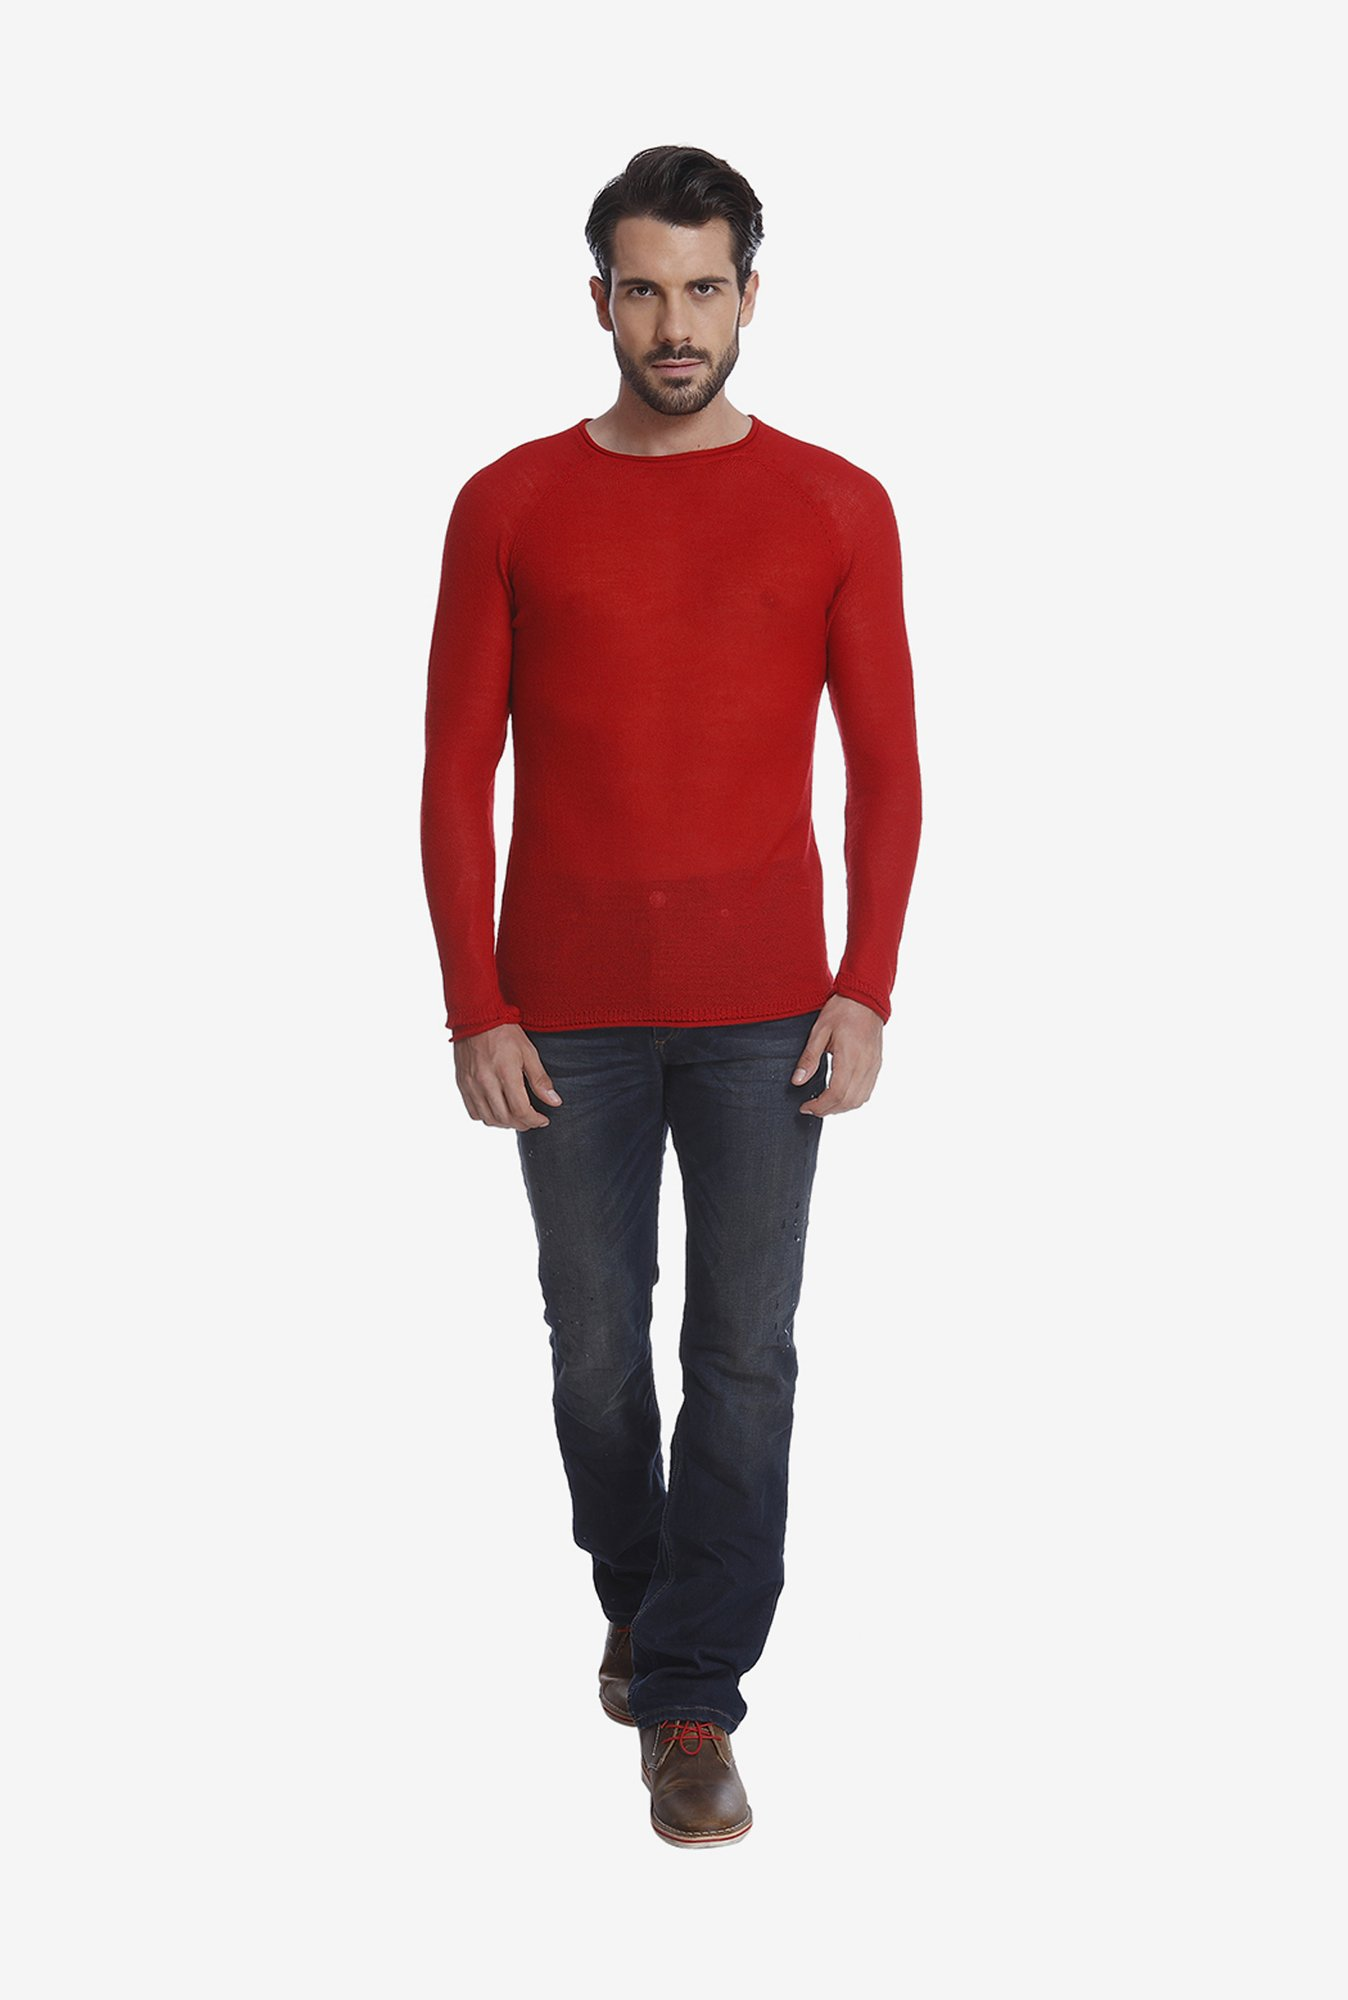 Jack & Jones Red T Shirt